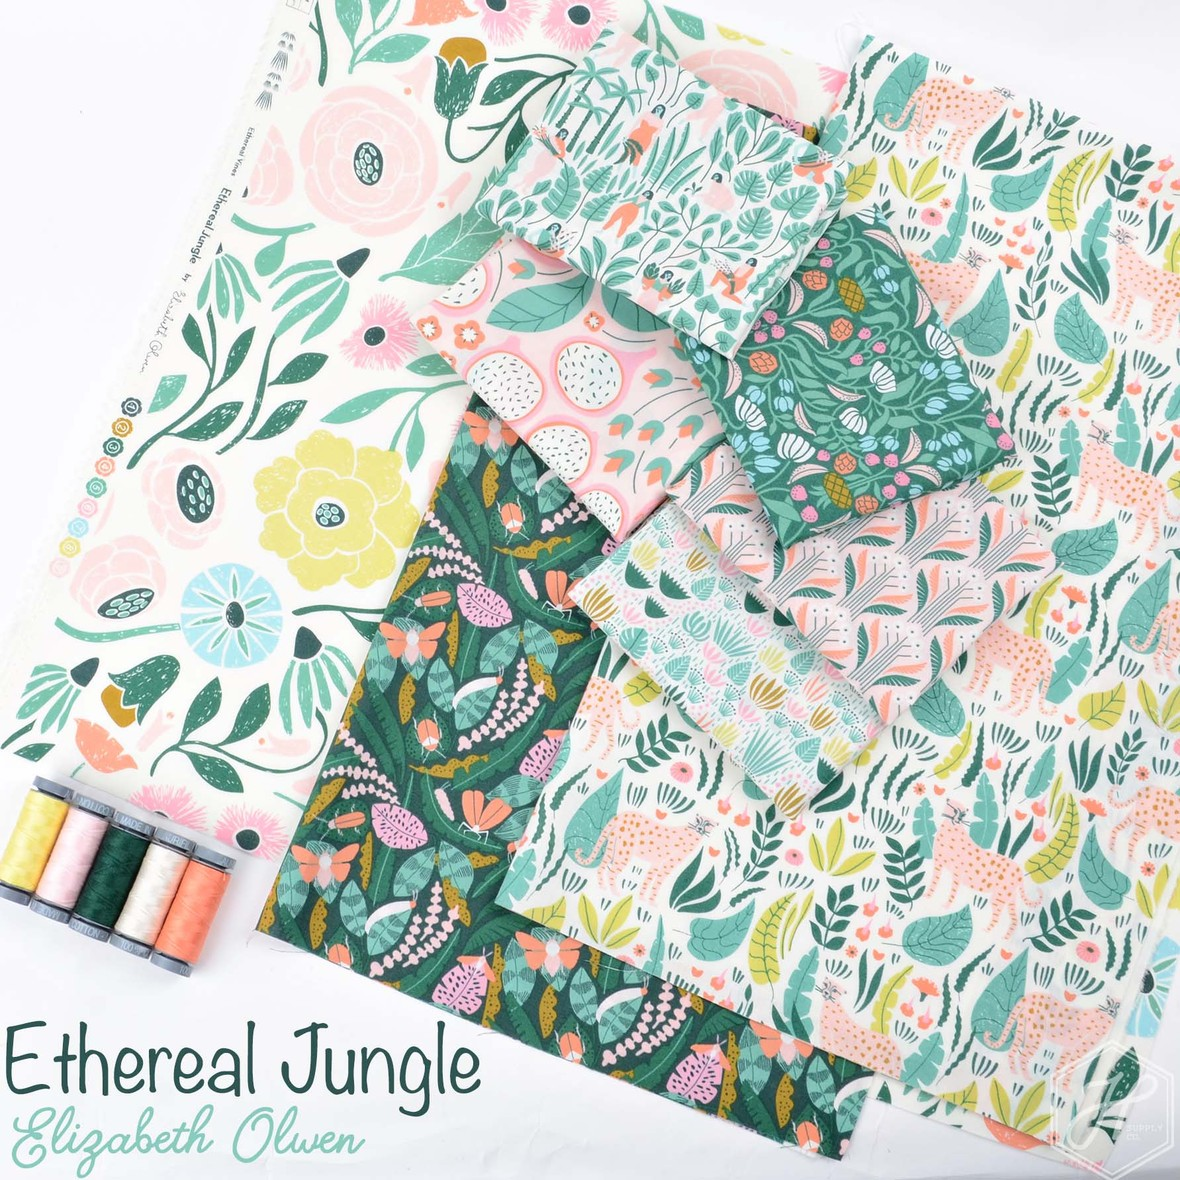 Ethereal Jungle Fabric Poster Elizabeth Olwen at Hawthorne Supply Co